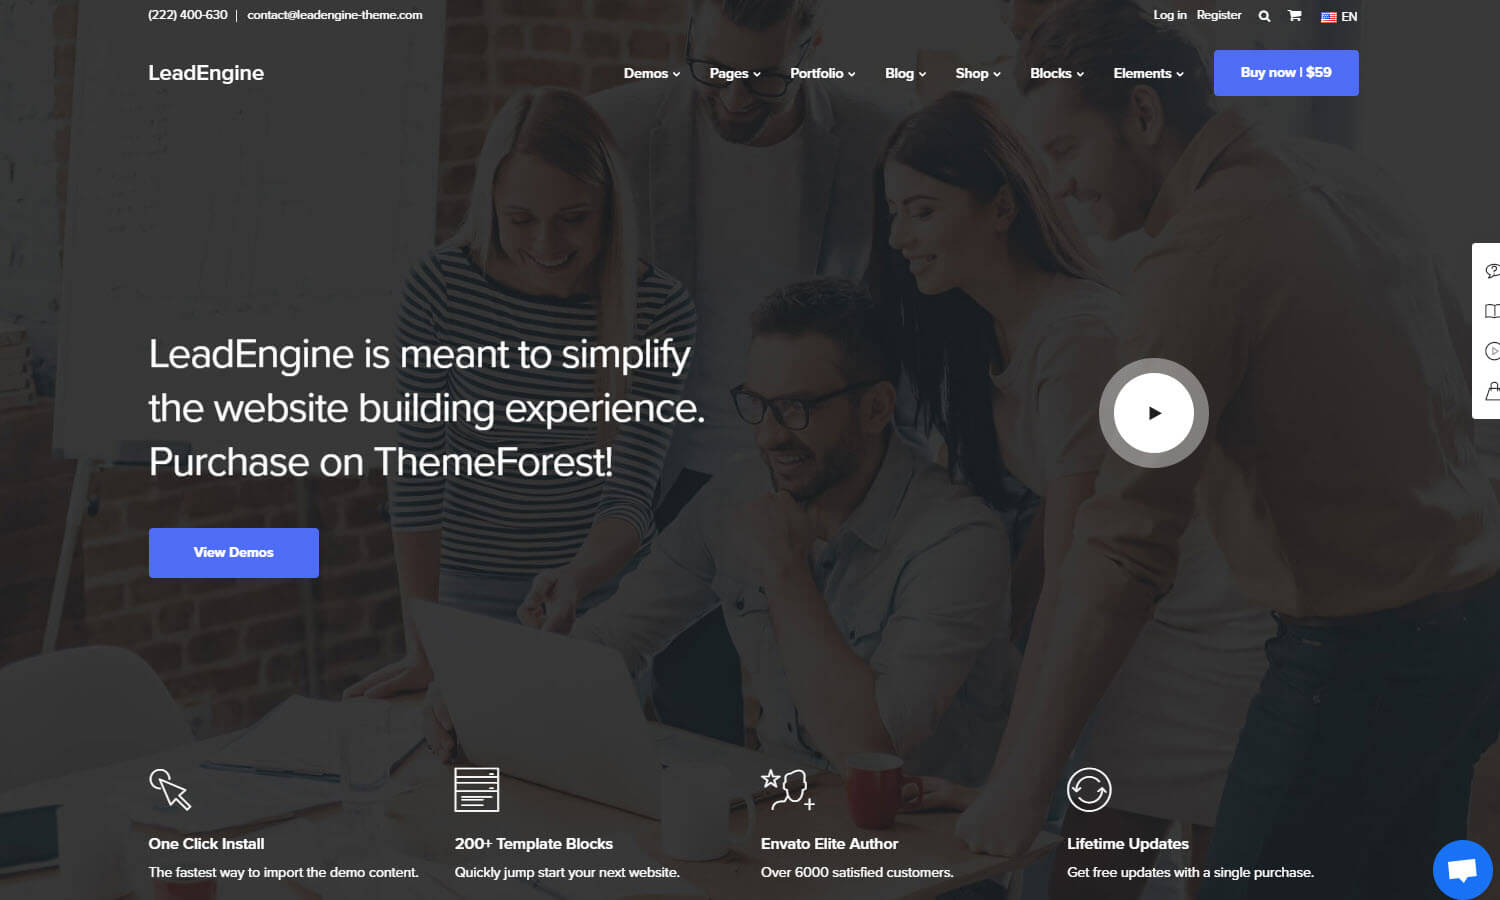 LeadEngine screenshot